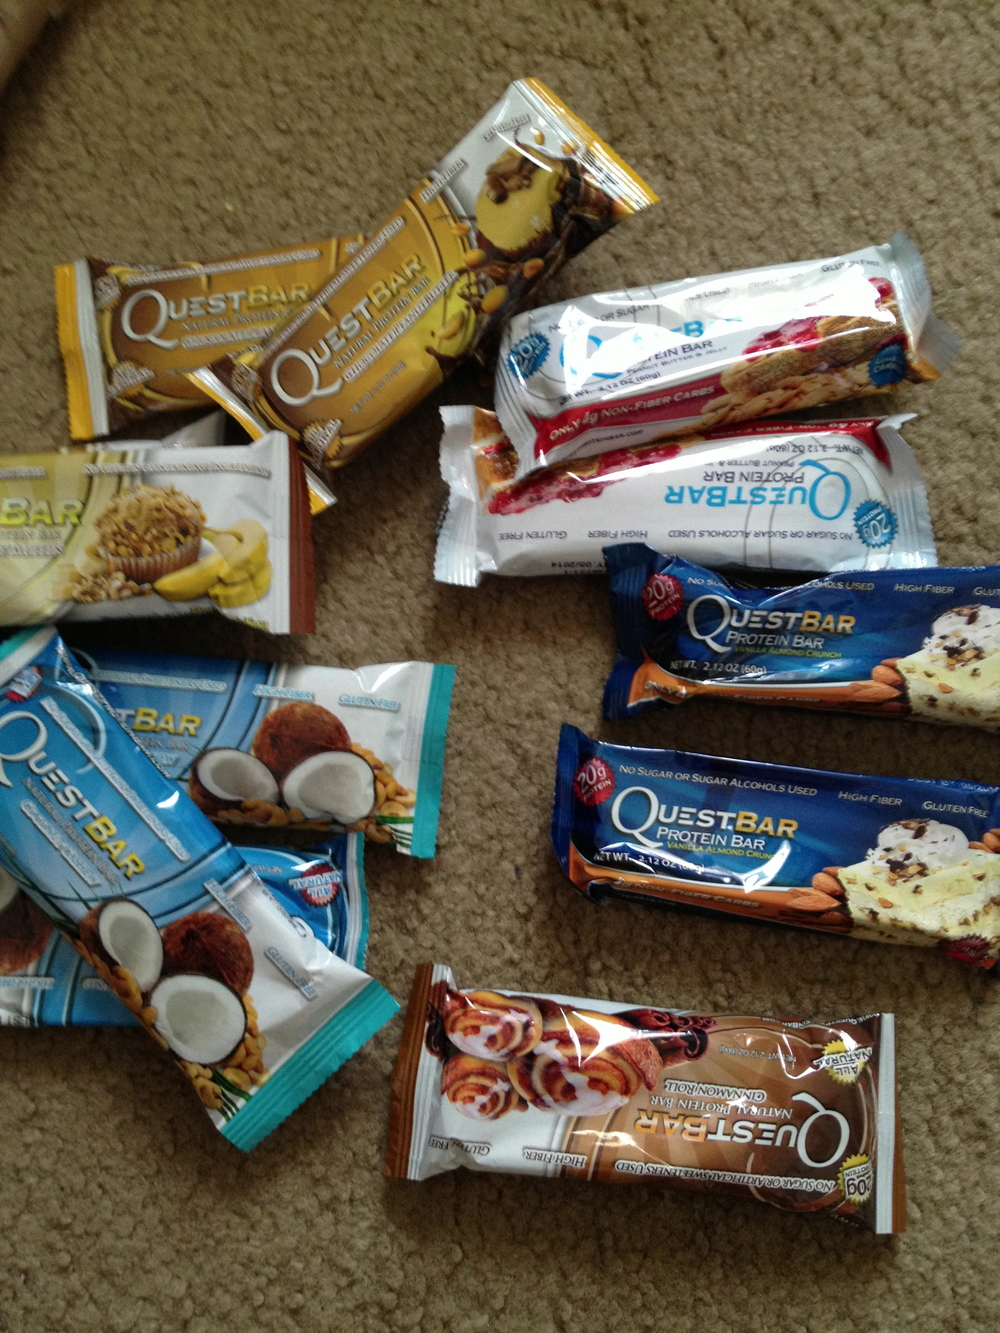 Quest Bars come in lots of flavors. They are super filling so I usually save them for drives home to Jersey when I don't want to stop to eat.